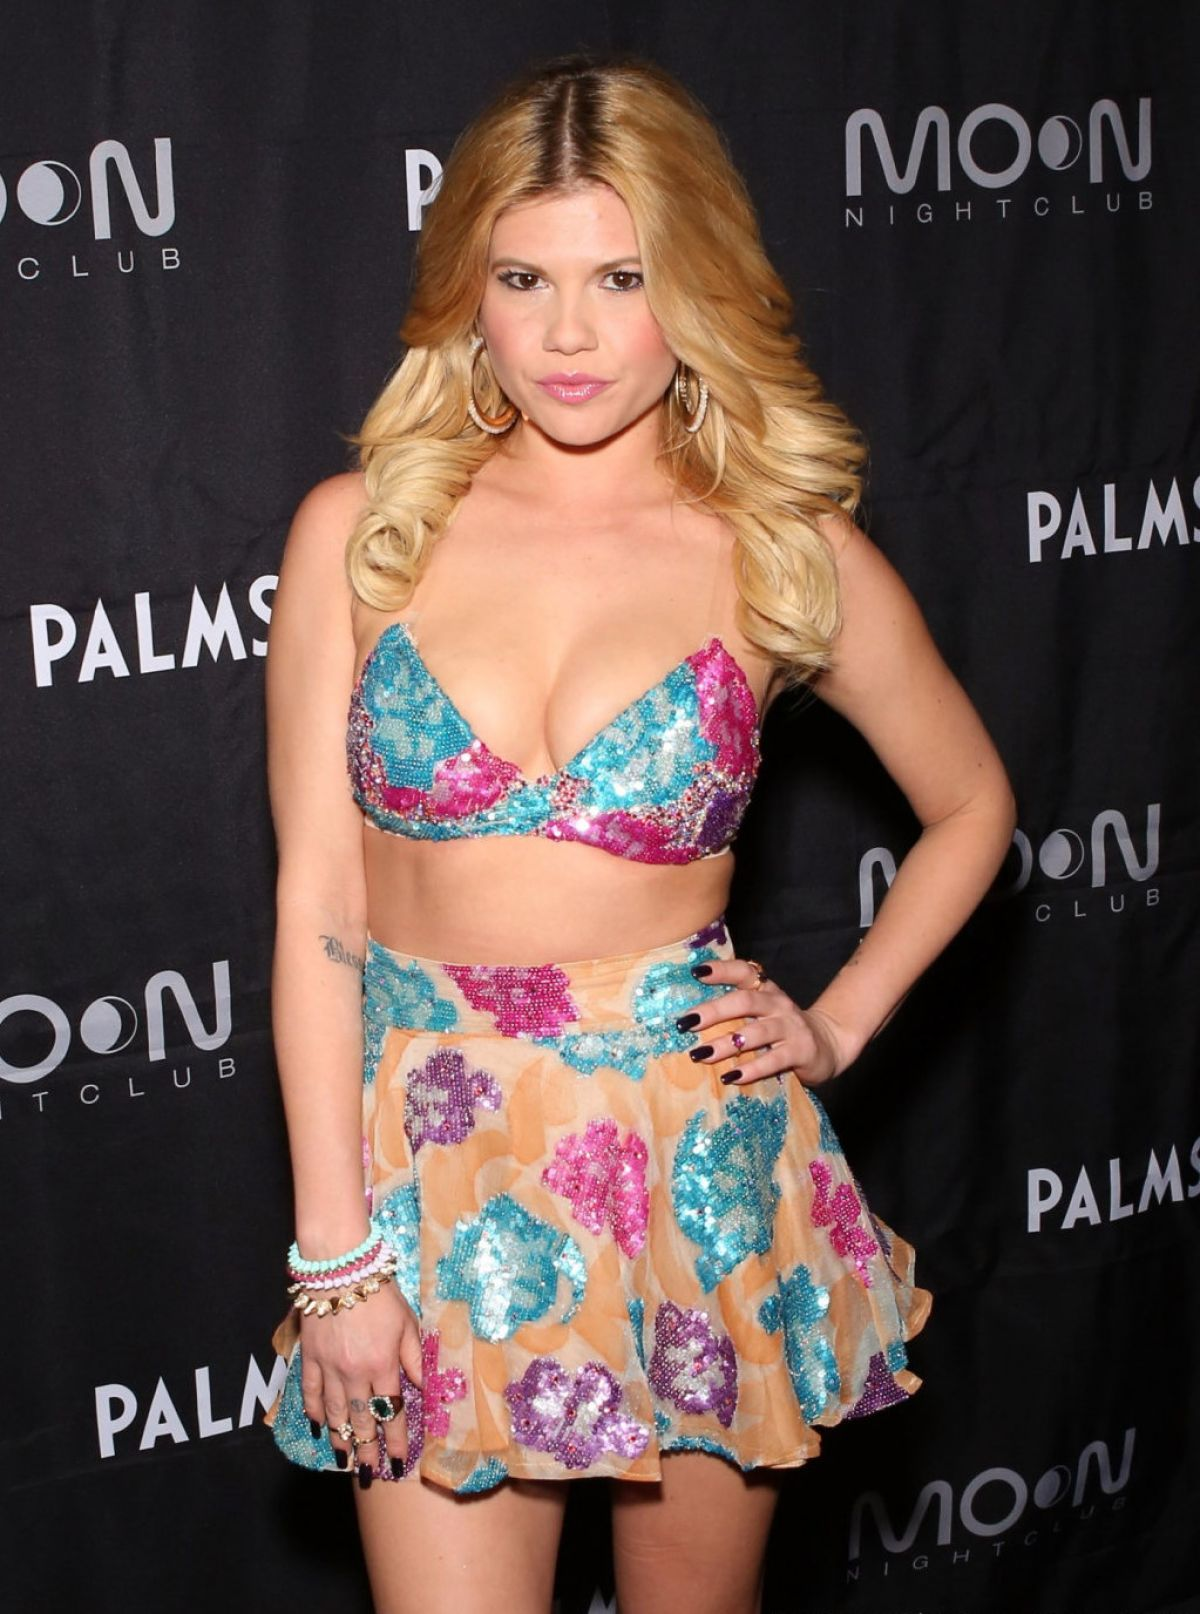 The 28-year old daughter of father (?) and mother(?), 175 cm tall Chanel West Coast in 2017 photo